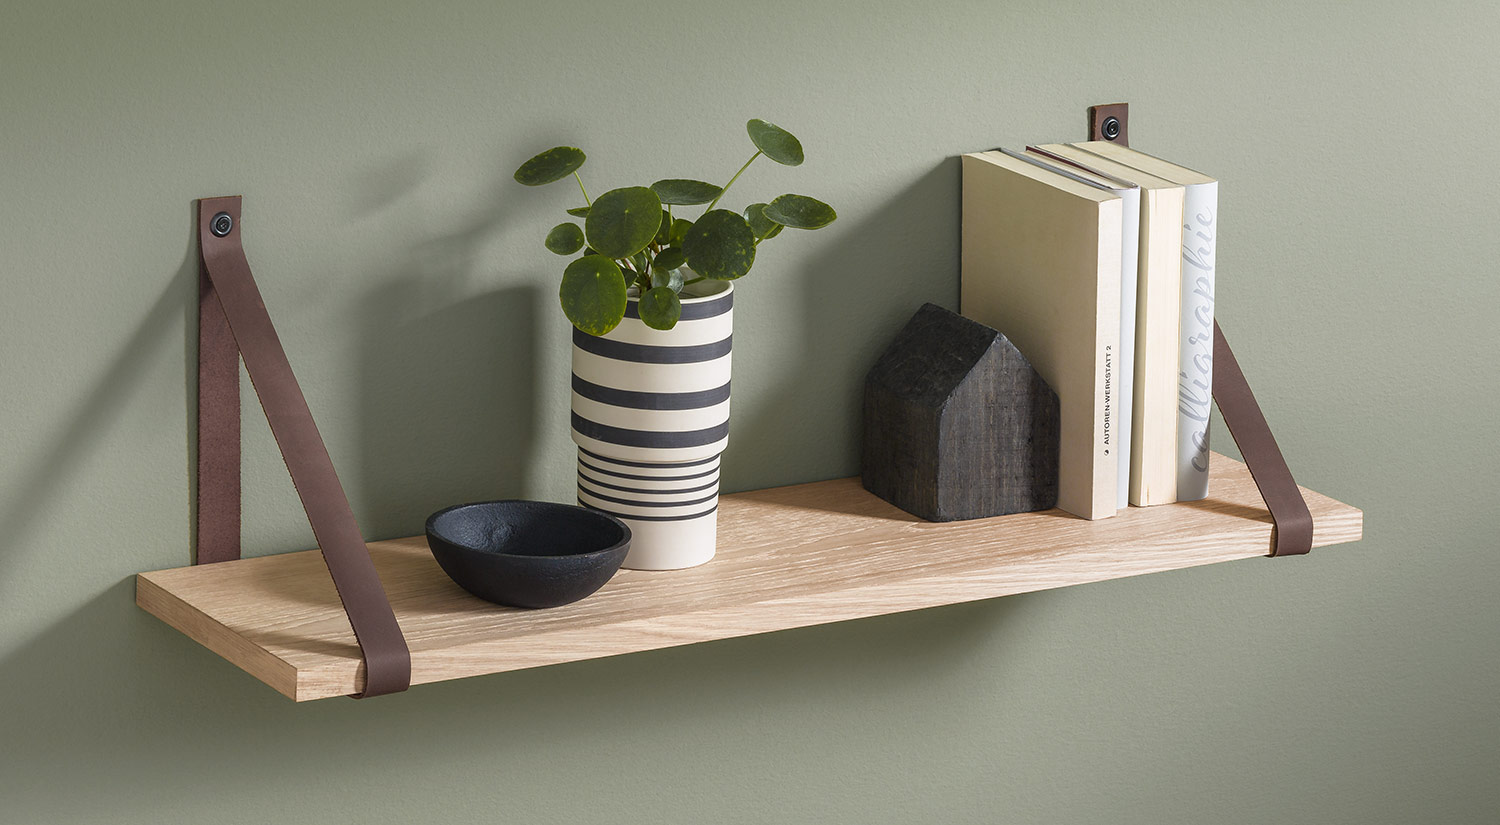 Wooden Wall Shelves - VINTAGE+LOOP Leather Strap Hanging Shelf